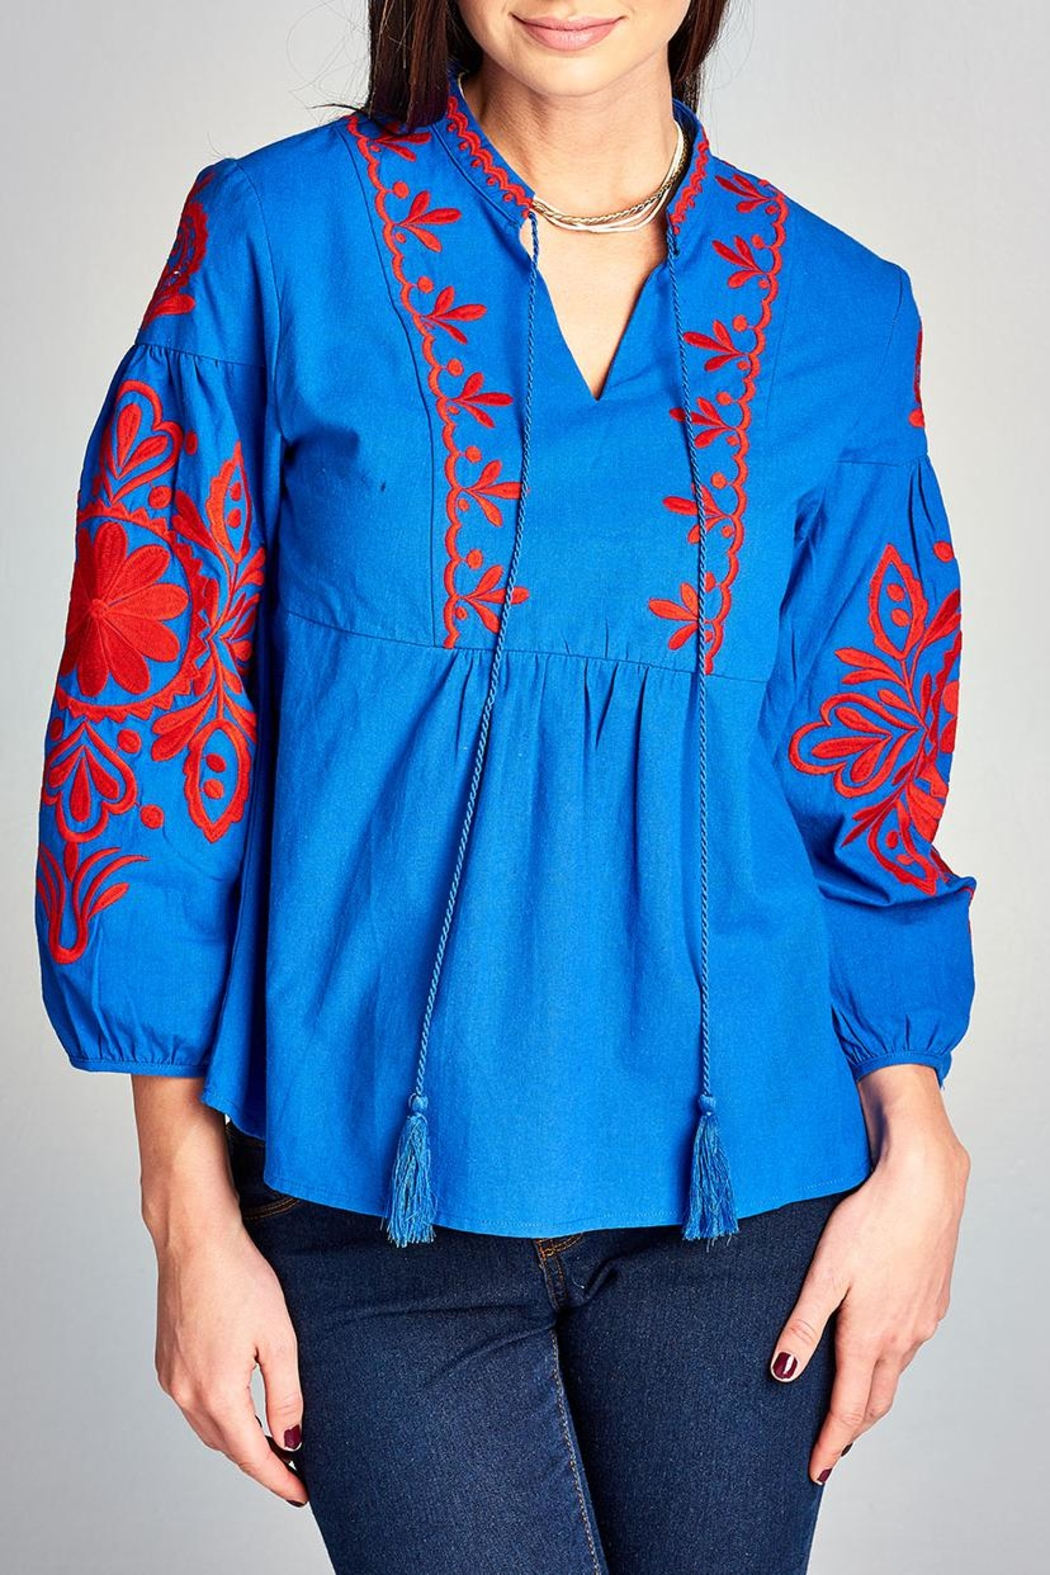 Velzera Embroidery-Accent Peasant Top - Main Image